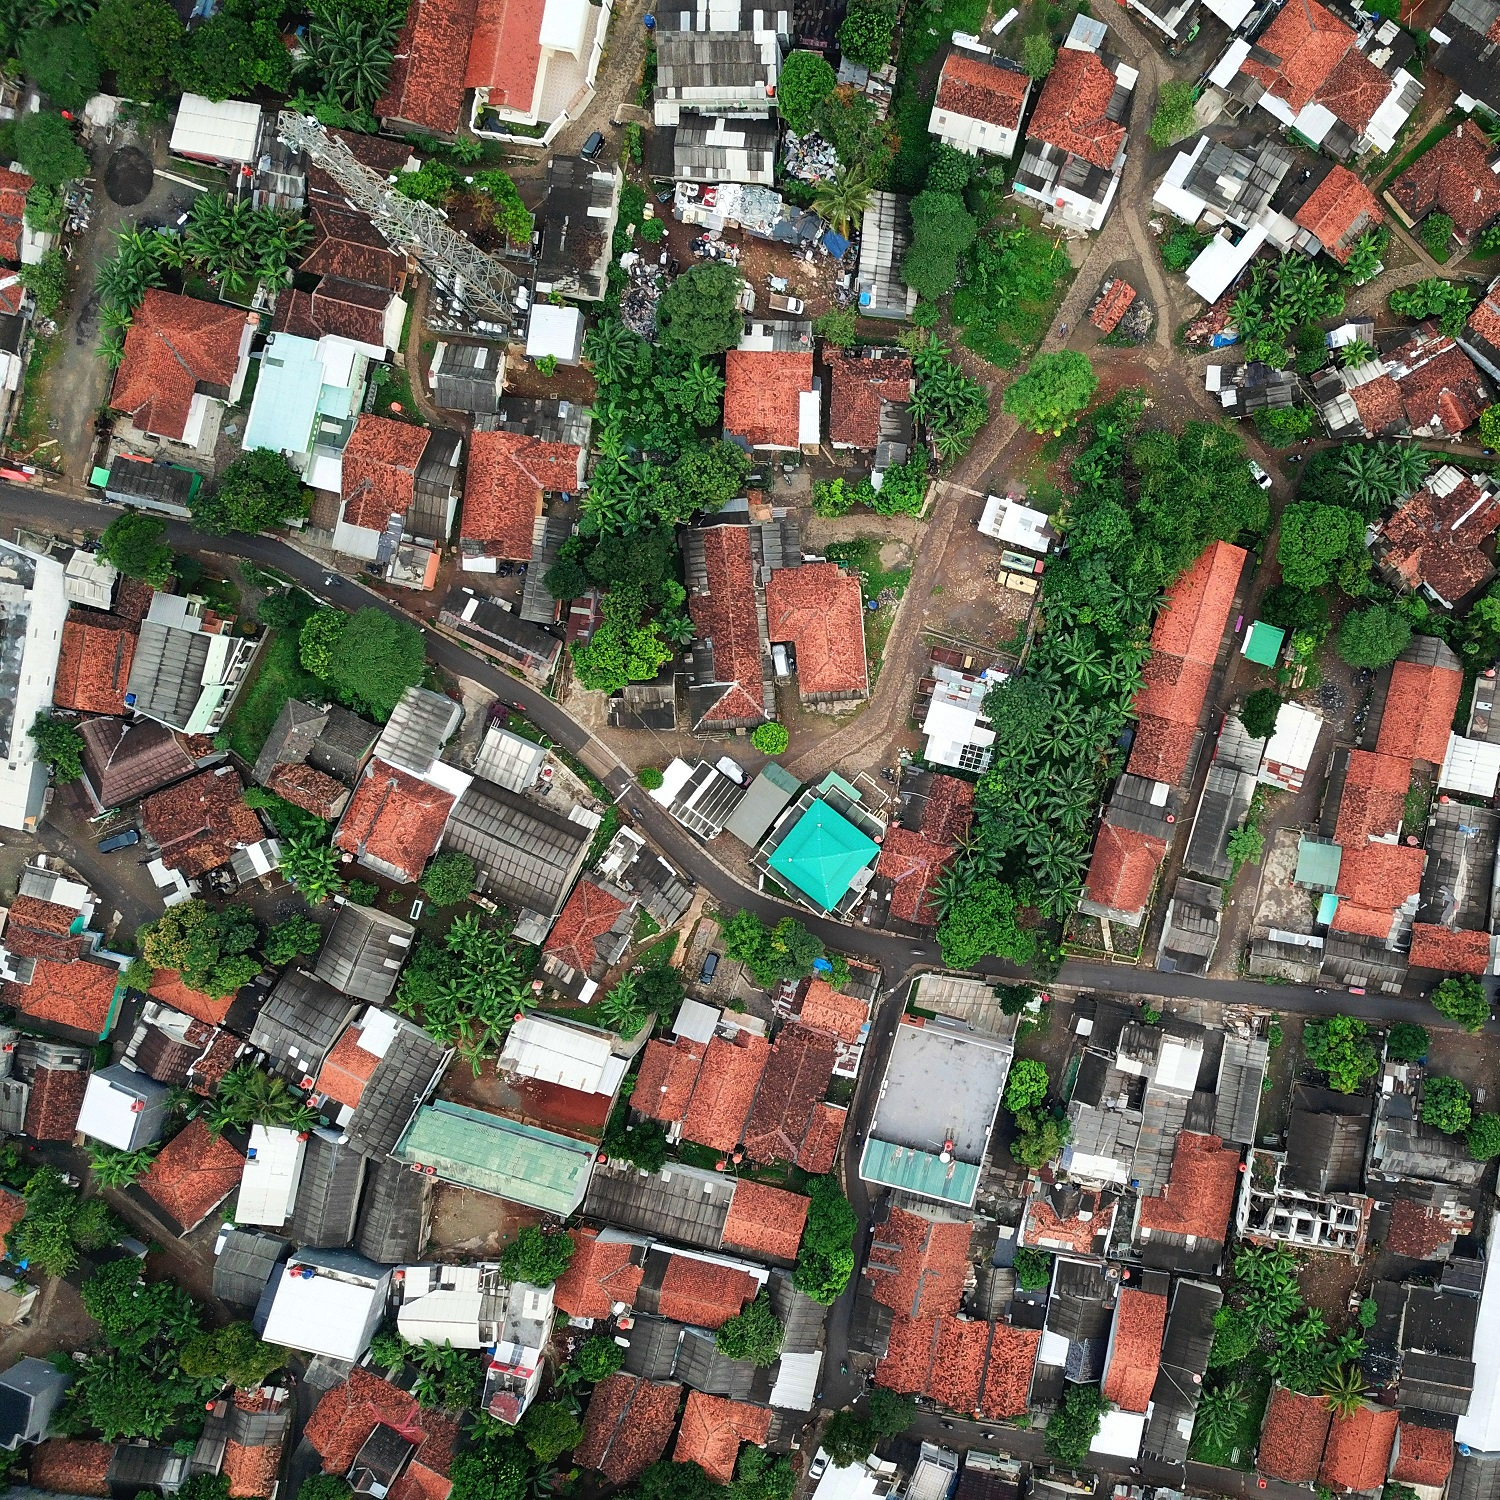 add building footprint to satellite imagery